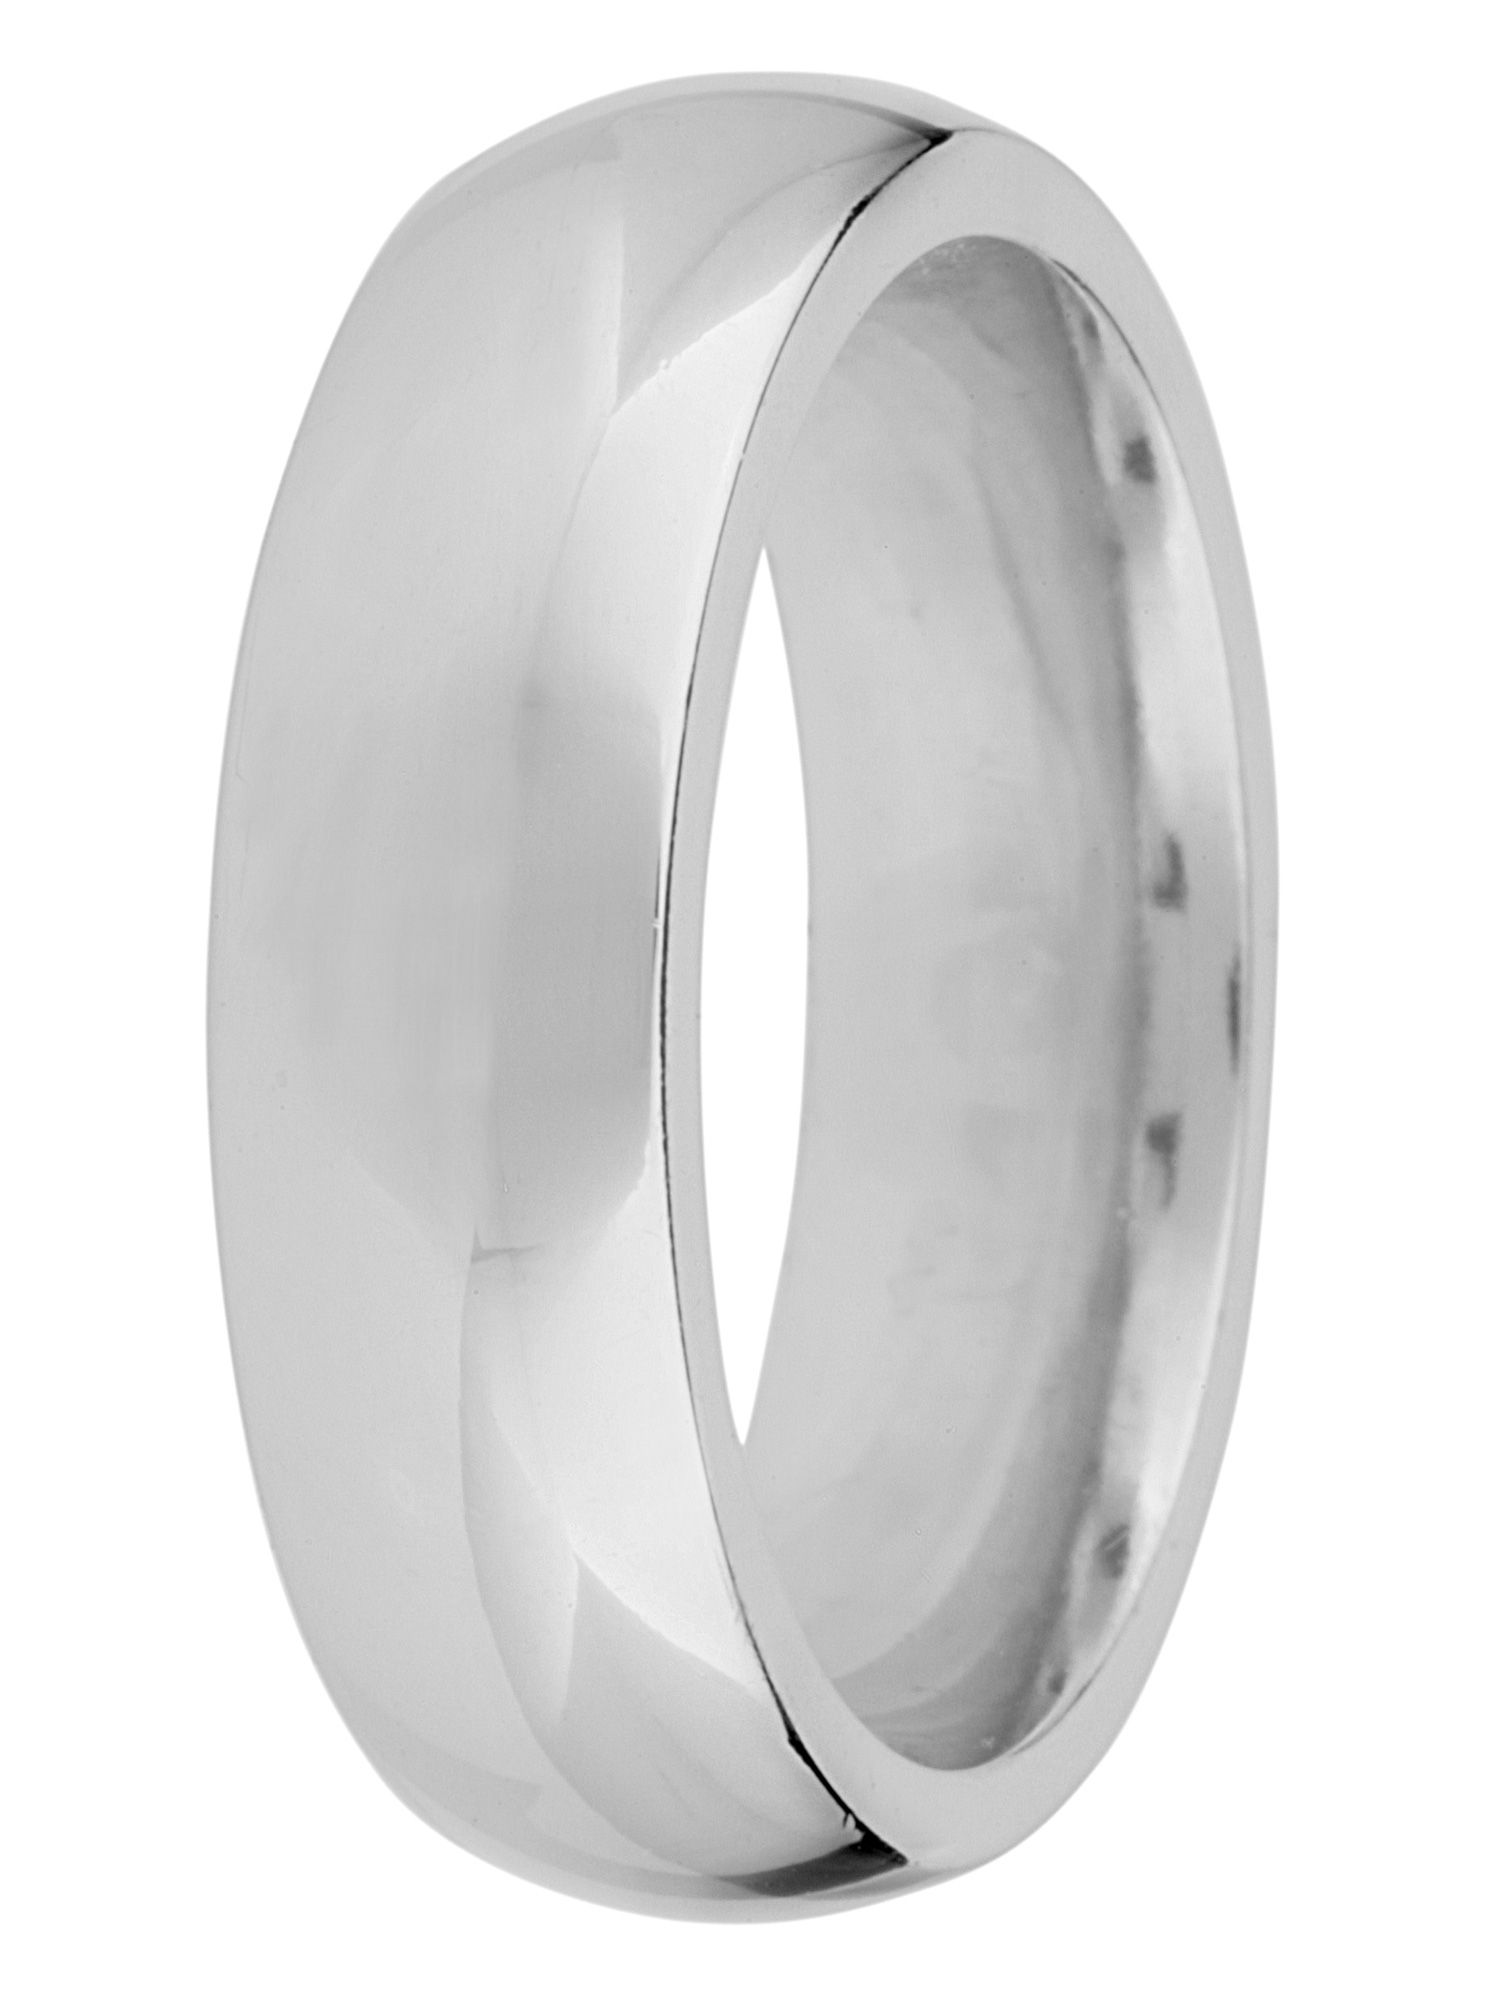 Grooms 9ct gold 6mm court wedding ring - White Gold